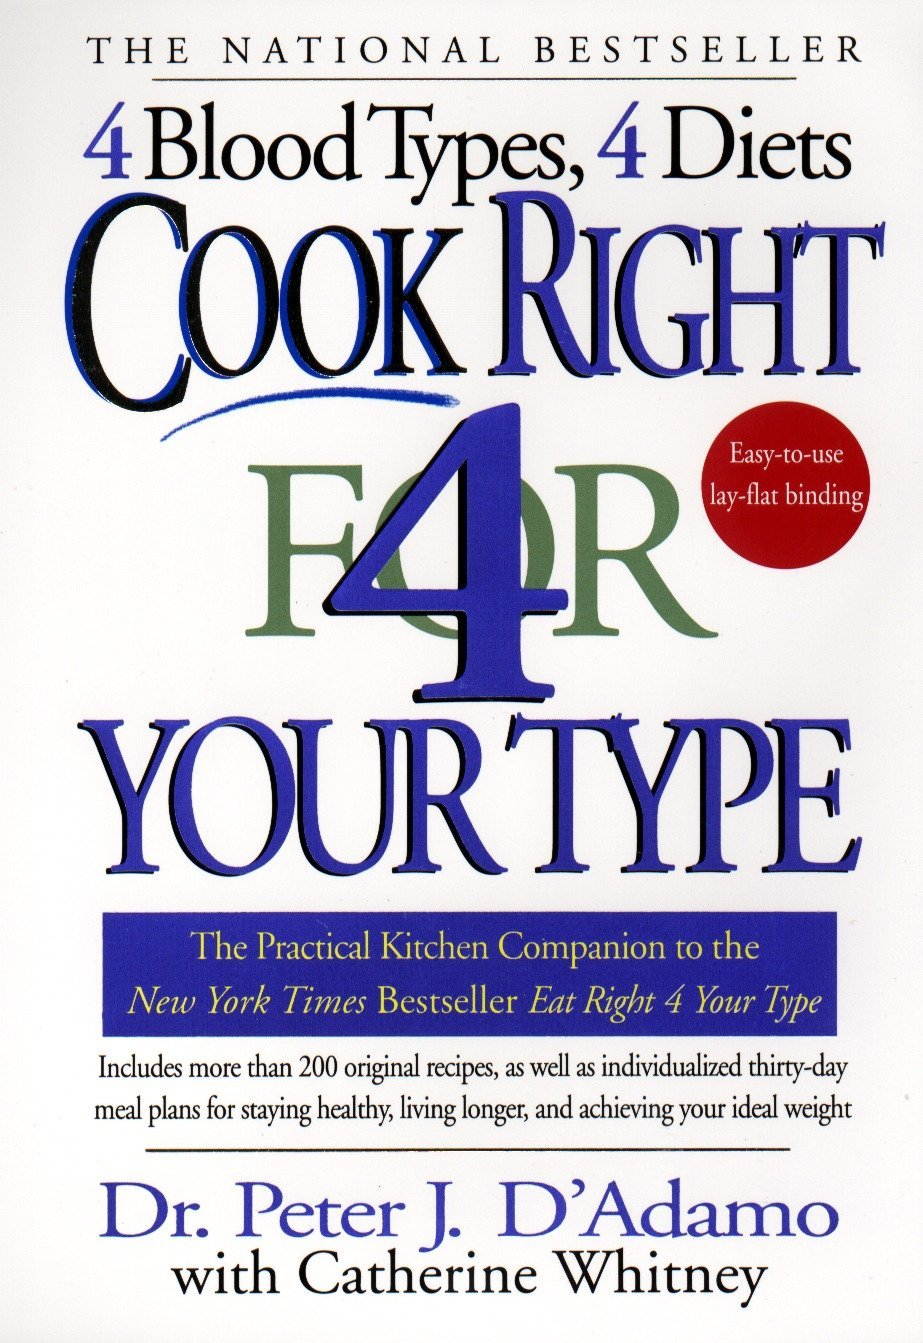 Cook Right 4 Your Type: The Practical Kitchen